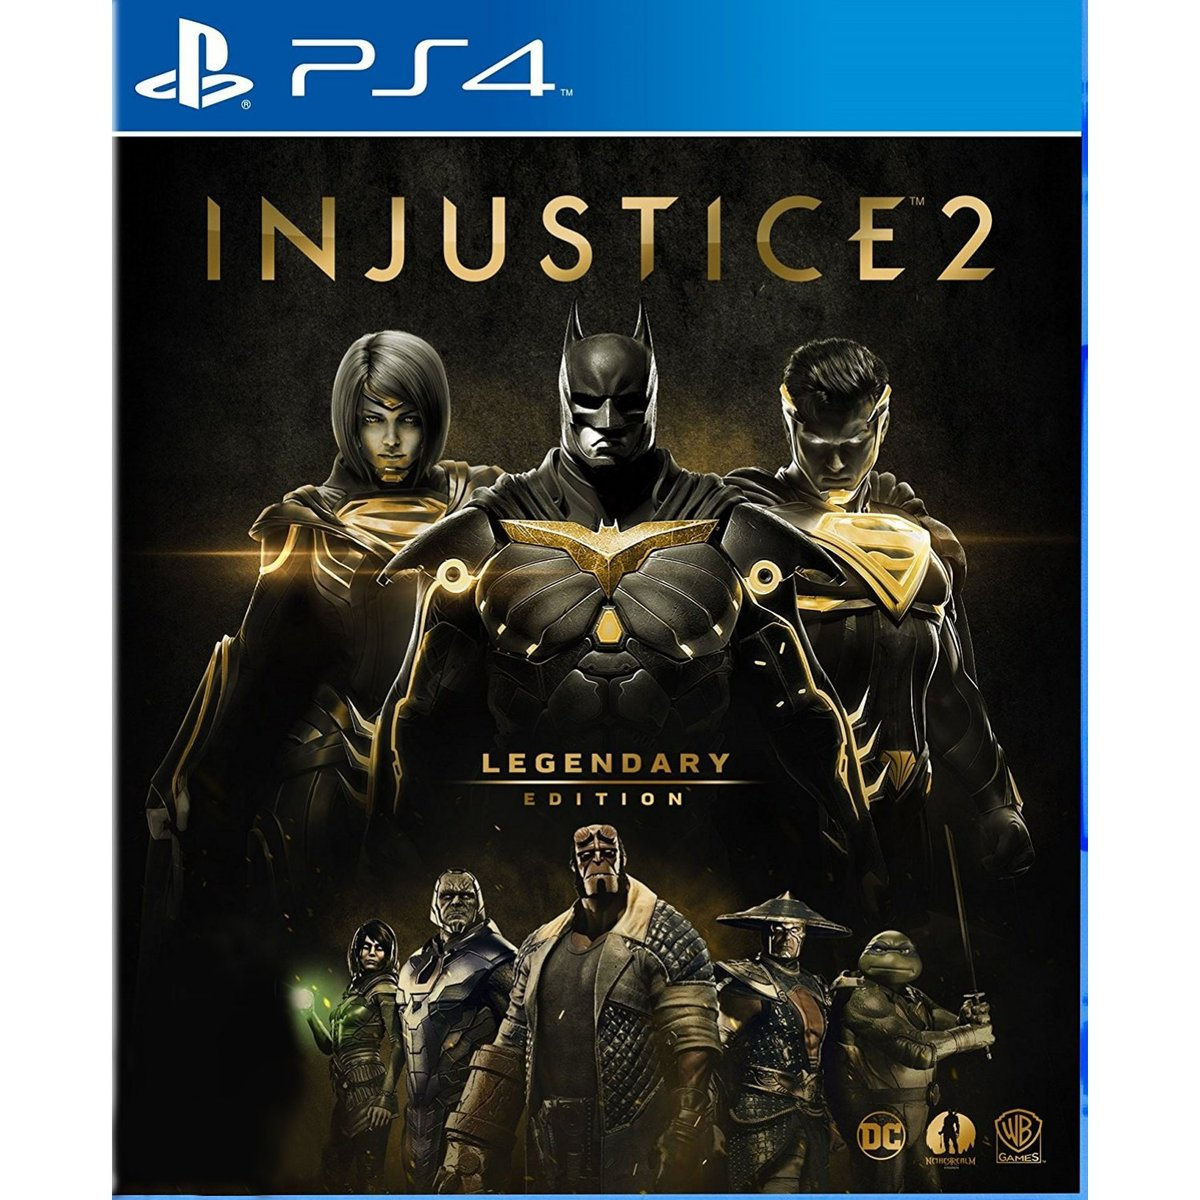 PS4 Game Injustice 2: Legendary Edition (English Subs)